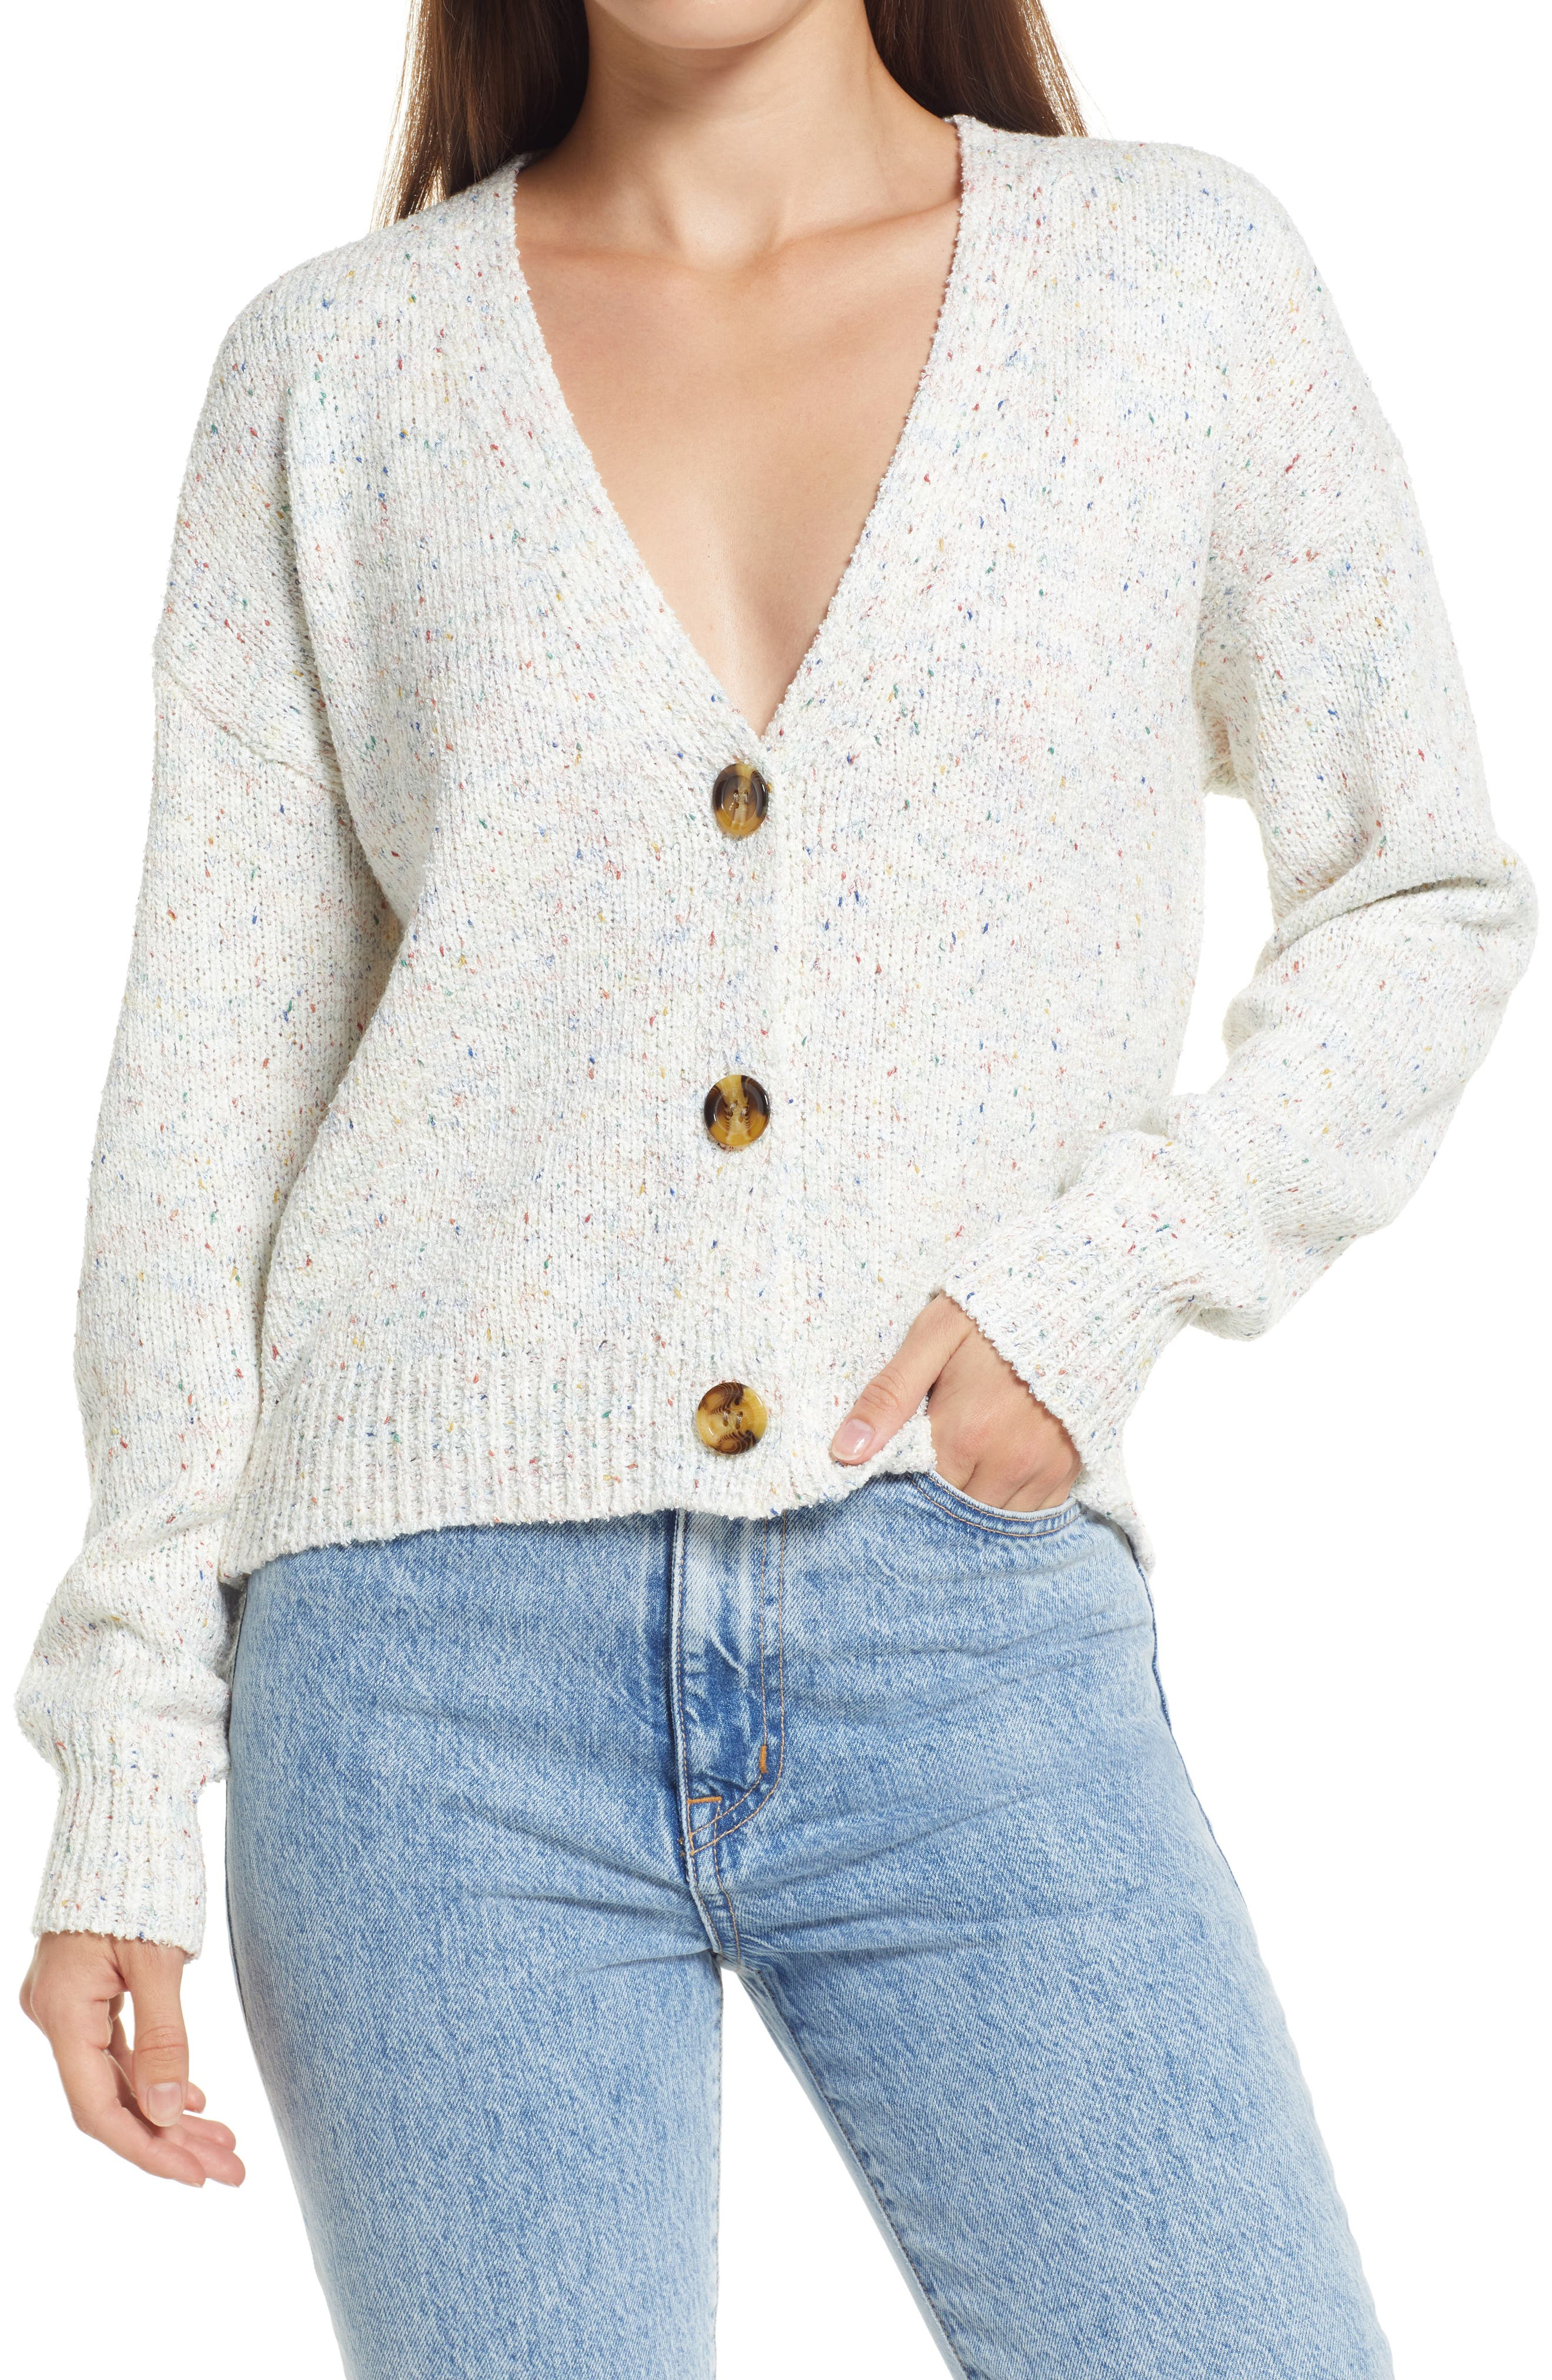 Happy Thoughts Multicolor Cardigan Sweater